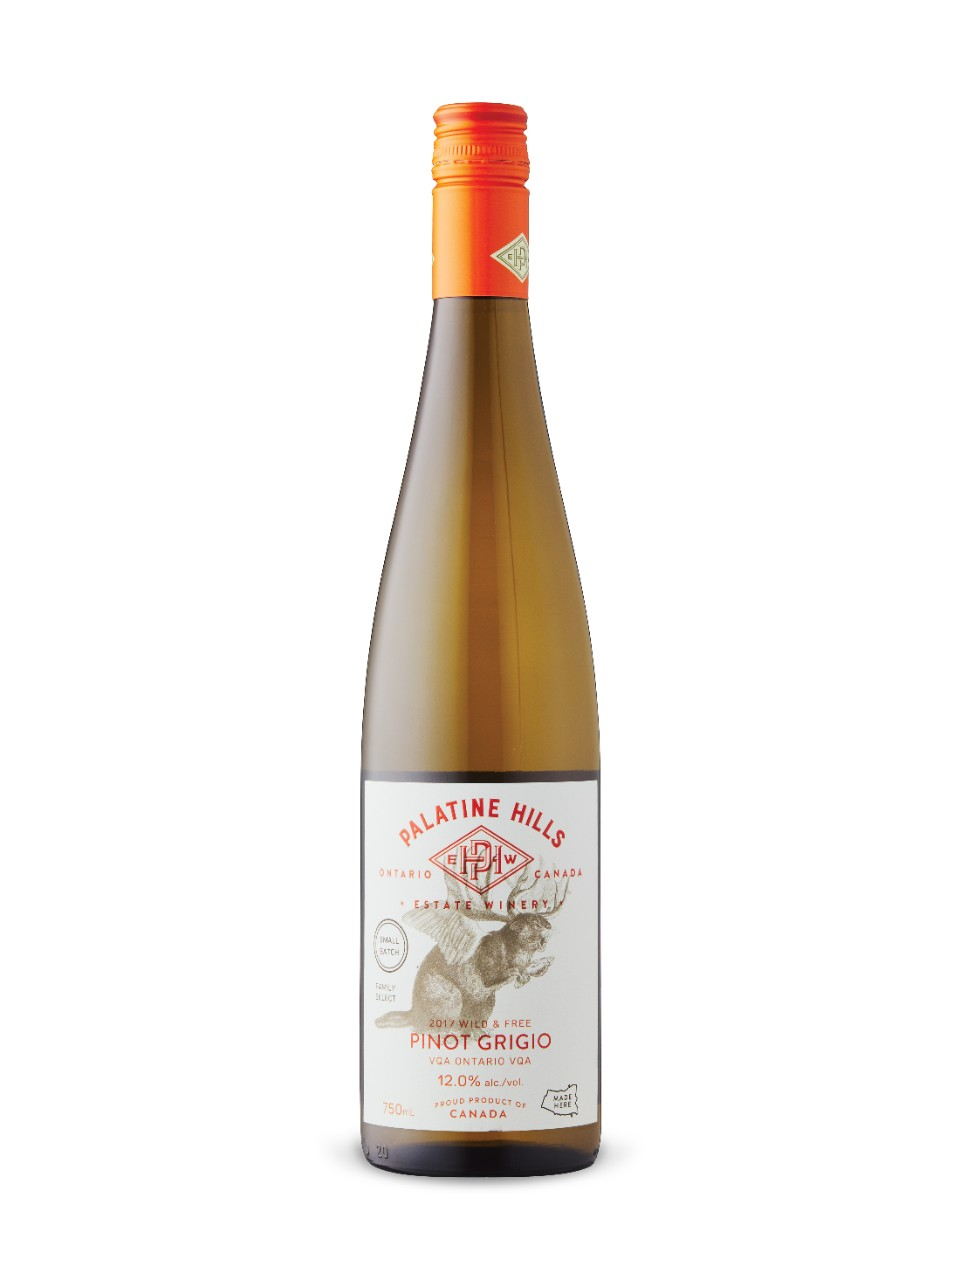 Palatine Hills Wild and Free Pinot Grigio 2017 from LCBO